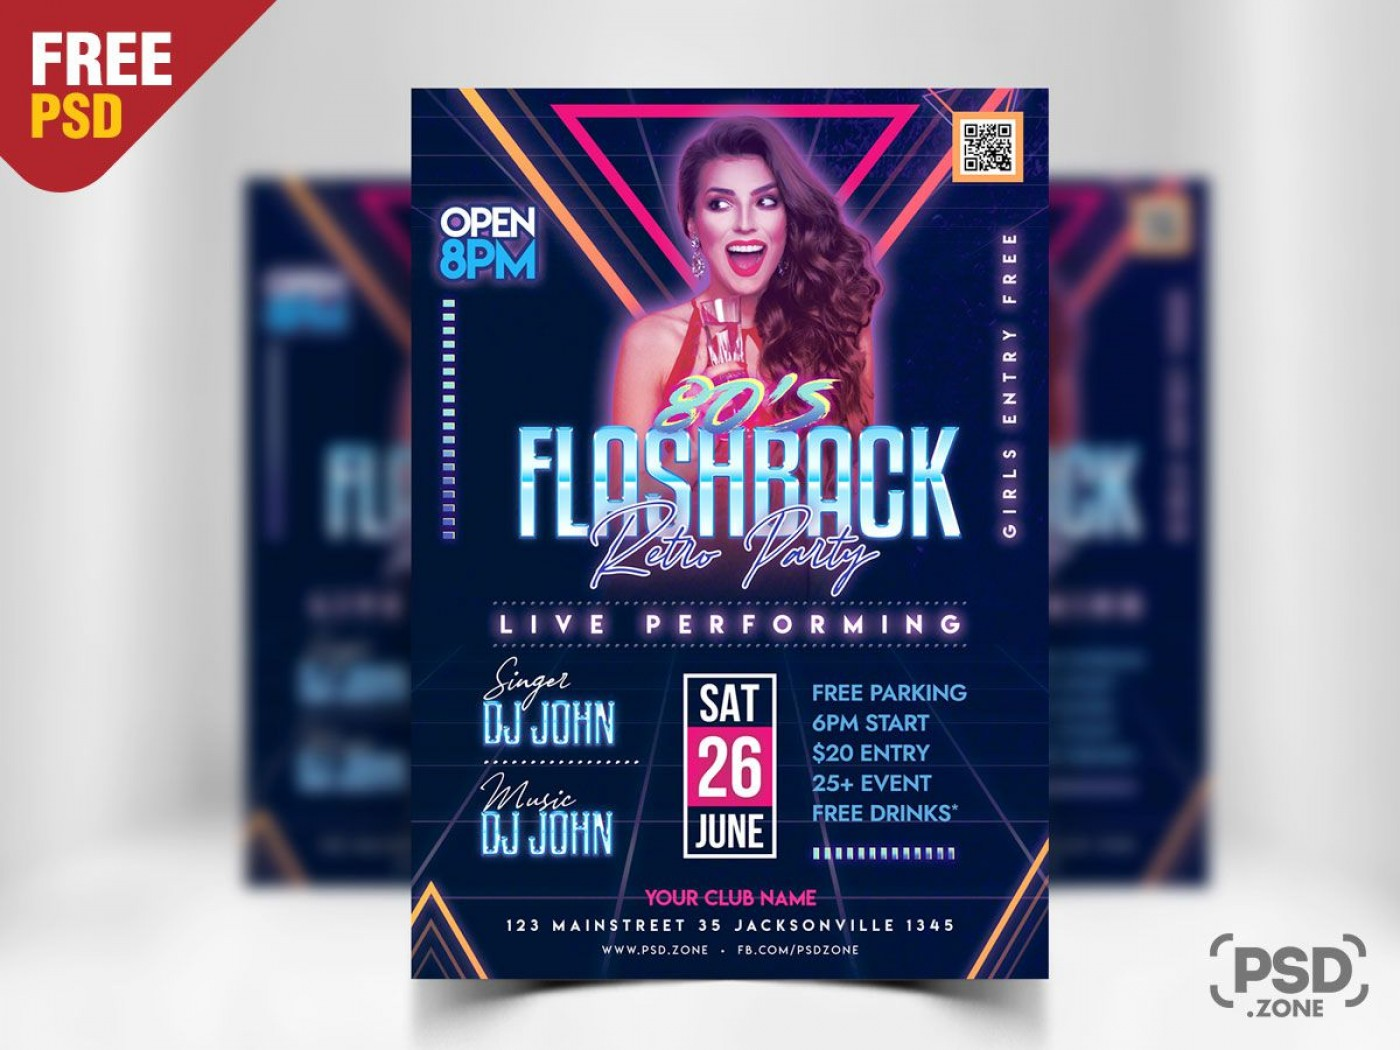 010 Top Free Party Flyer Template For Photoshop Inspiration  Pool Psd Download1400